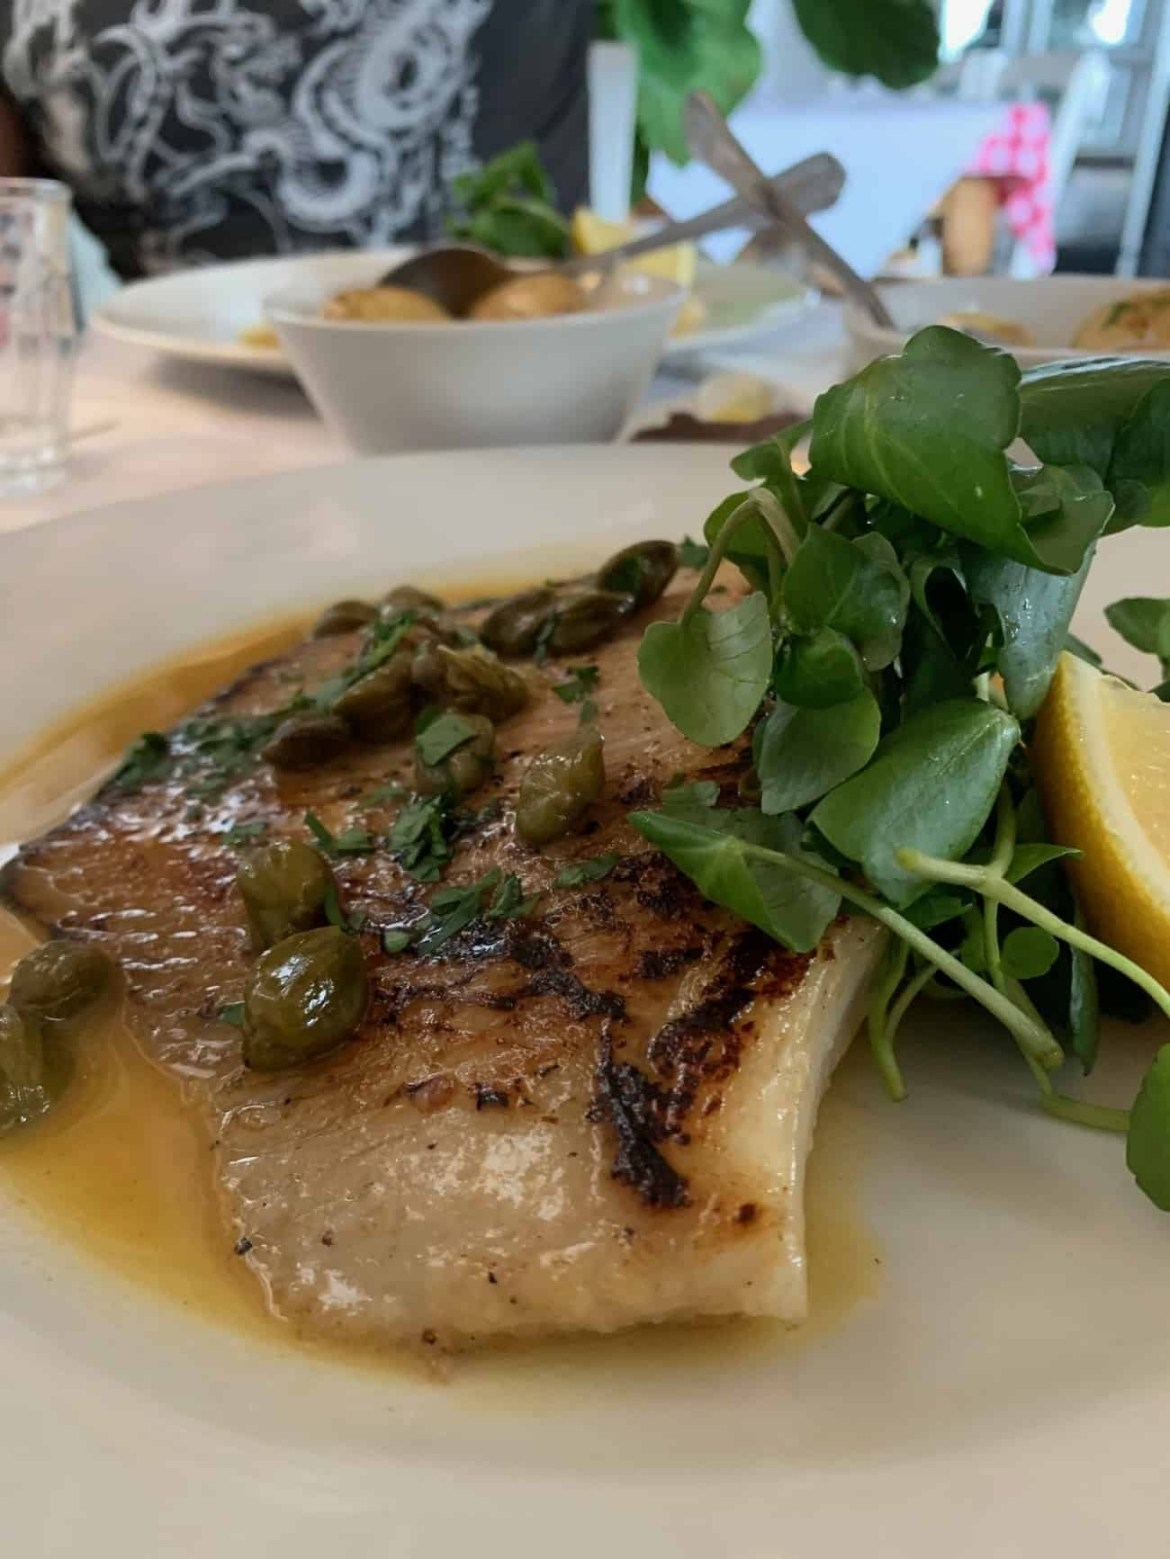 Fish main for lunch at Whitstable Oyster Company